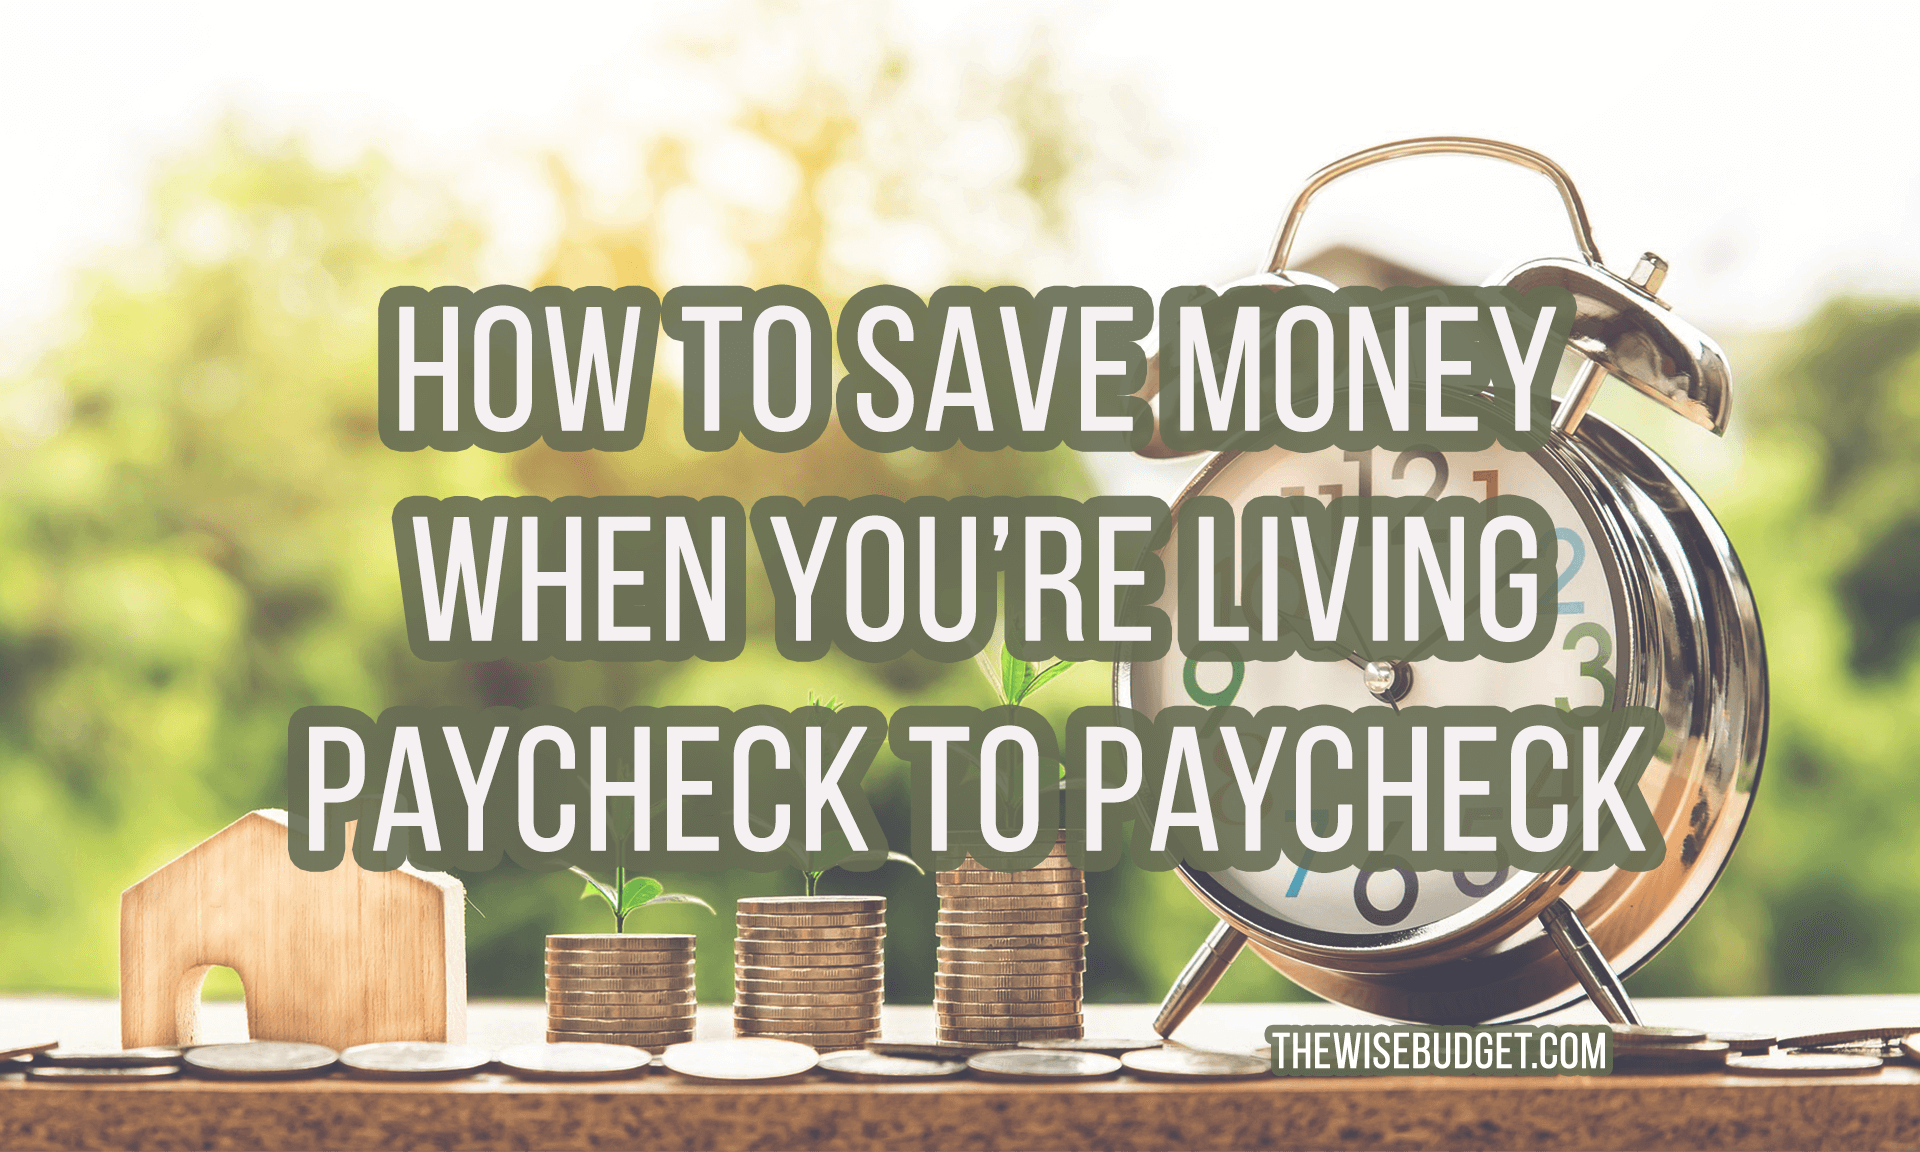 thewisebudget how to save money when living paycheck to paycheck